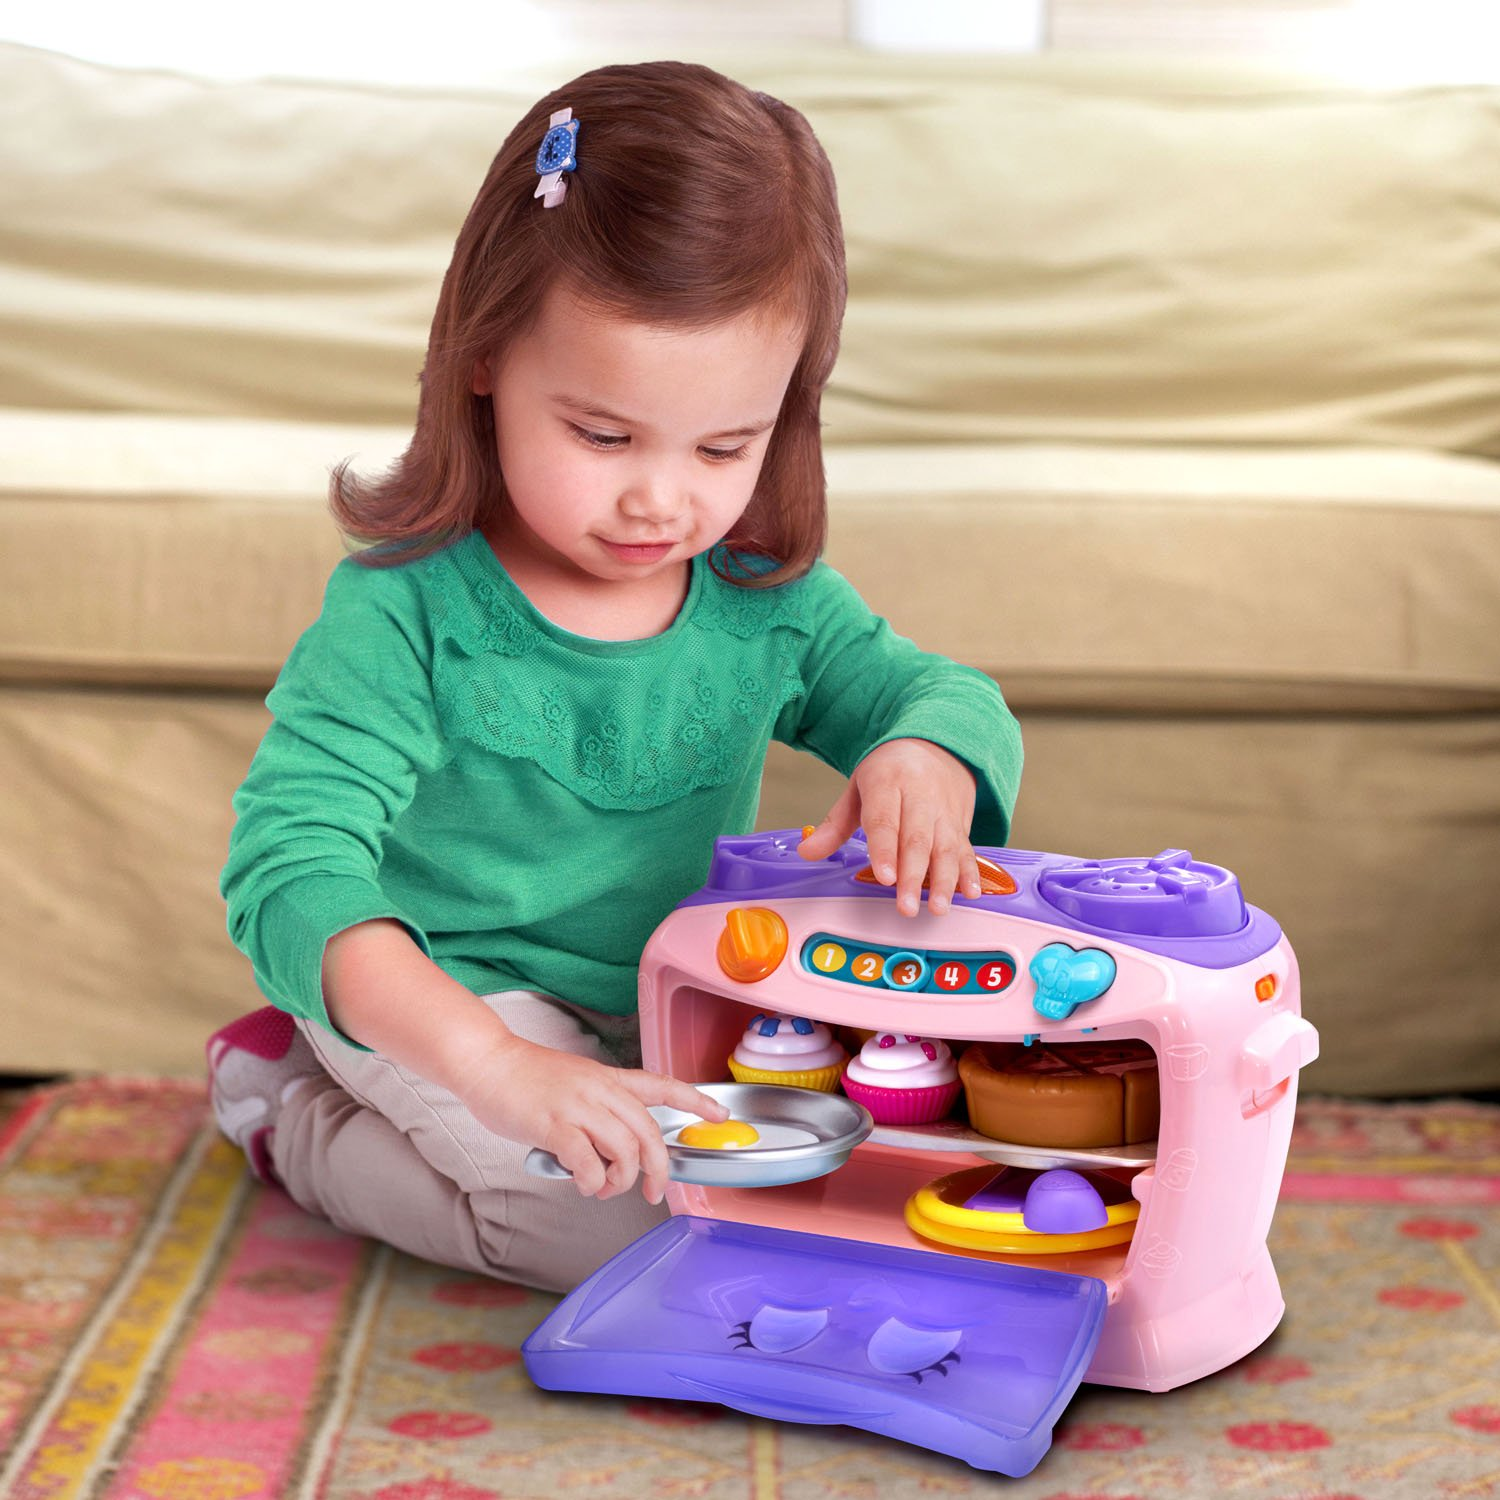 LeapFrog Number Lovin' Oven, pink (Amazon Exclusive) by LeapFrog (Image #6)